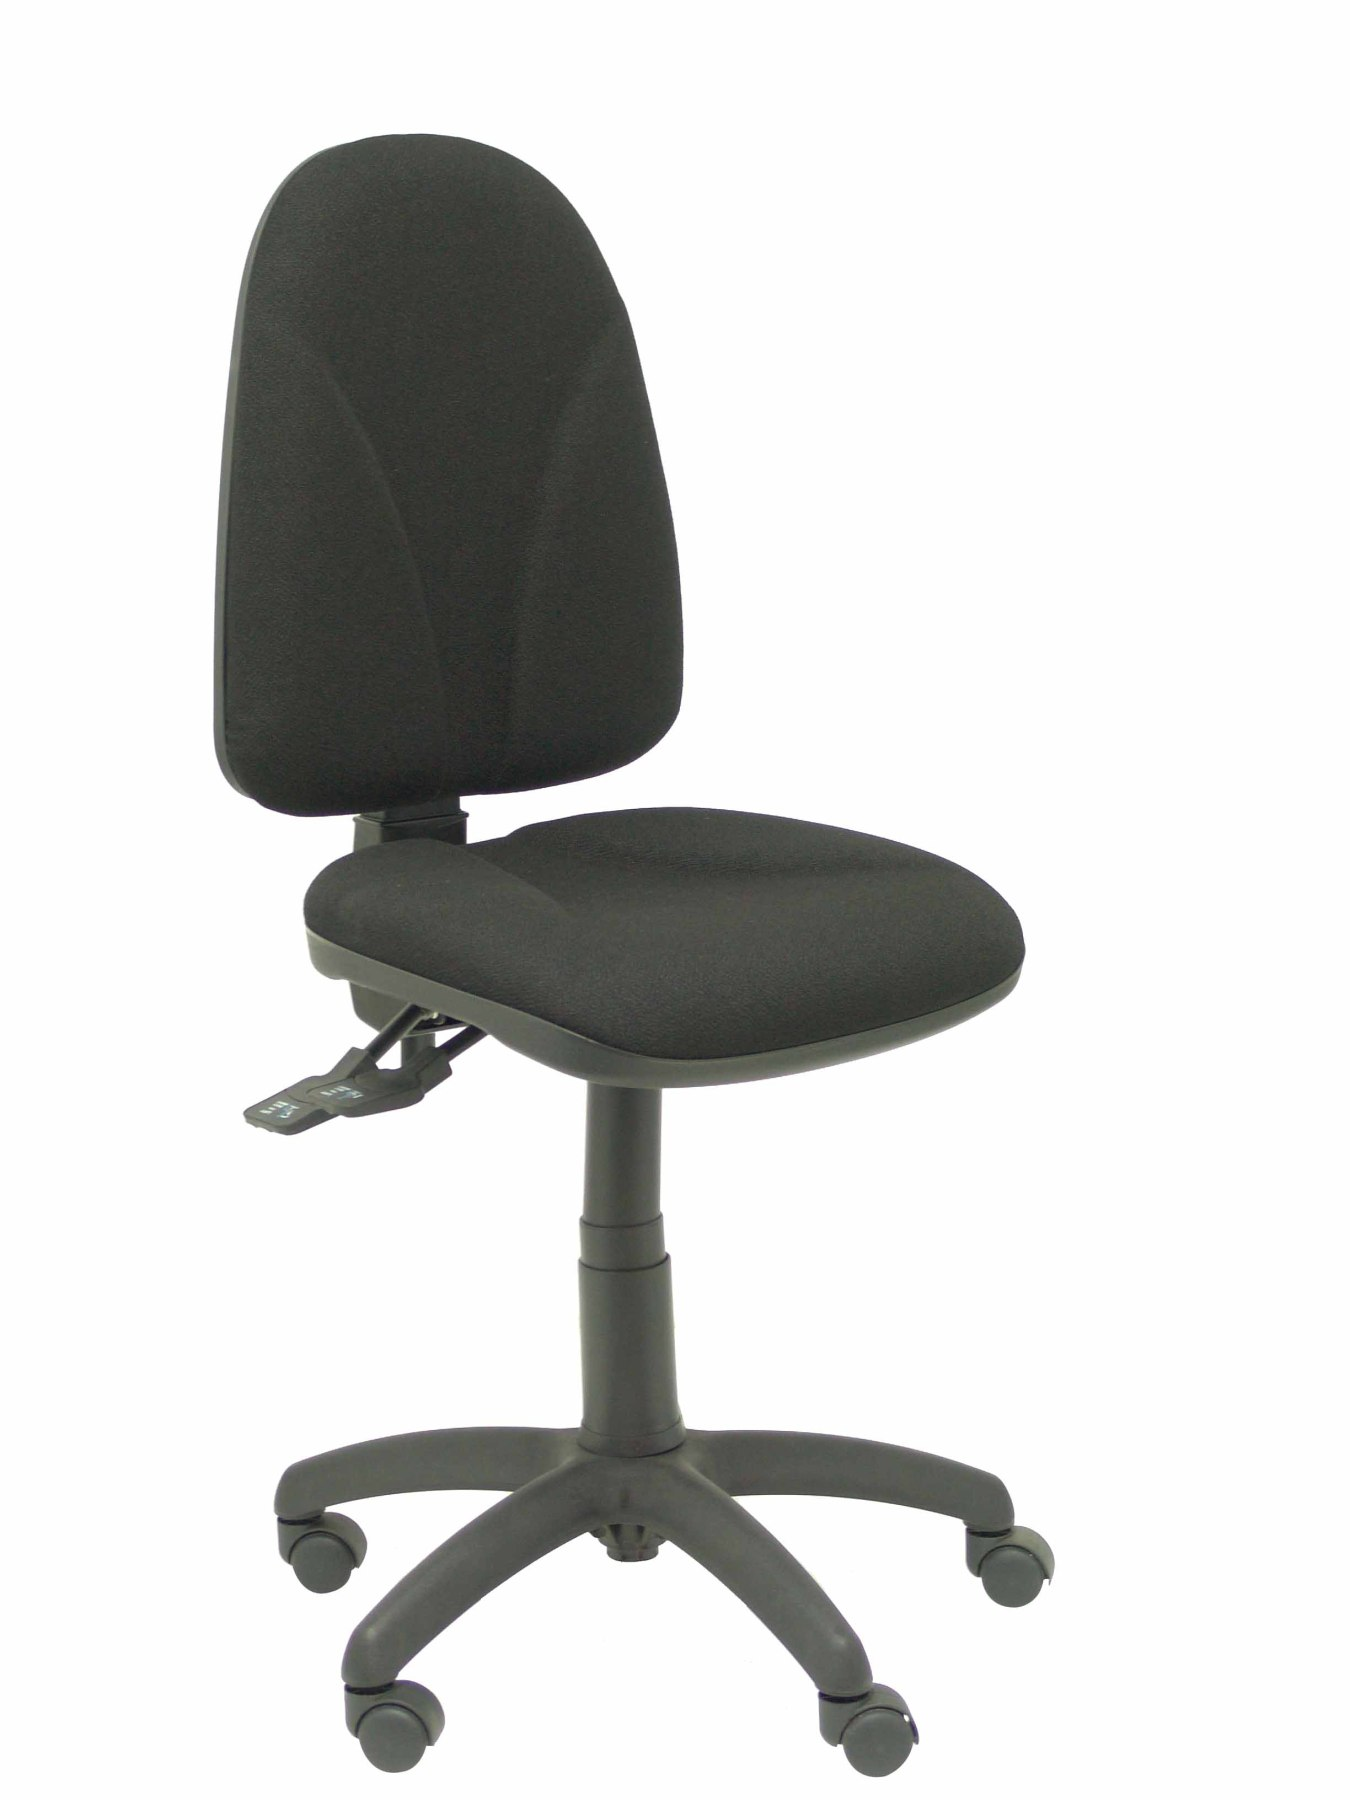 Ergonomic Office Chair With Mechanism Asincro And Adjustable Height-Seat And Back Upholstered In Fabric BALI C